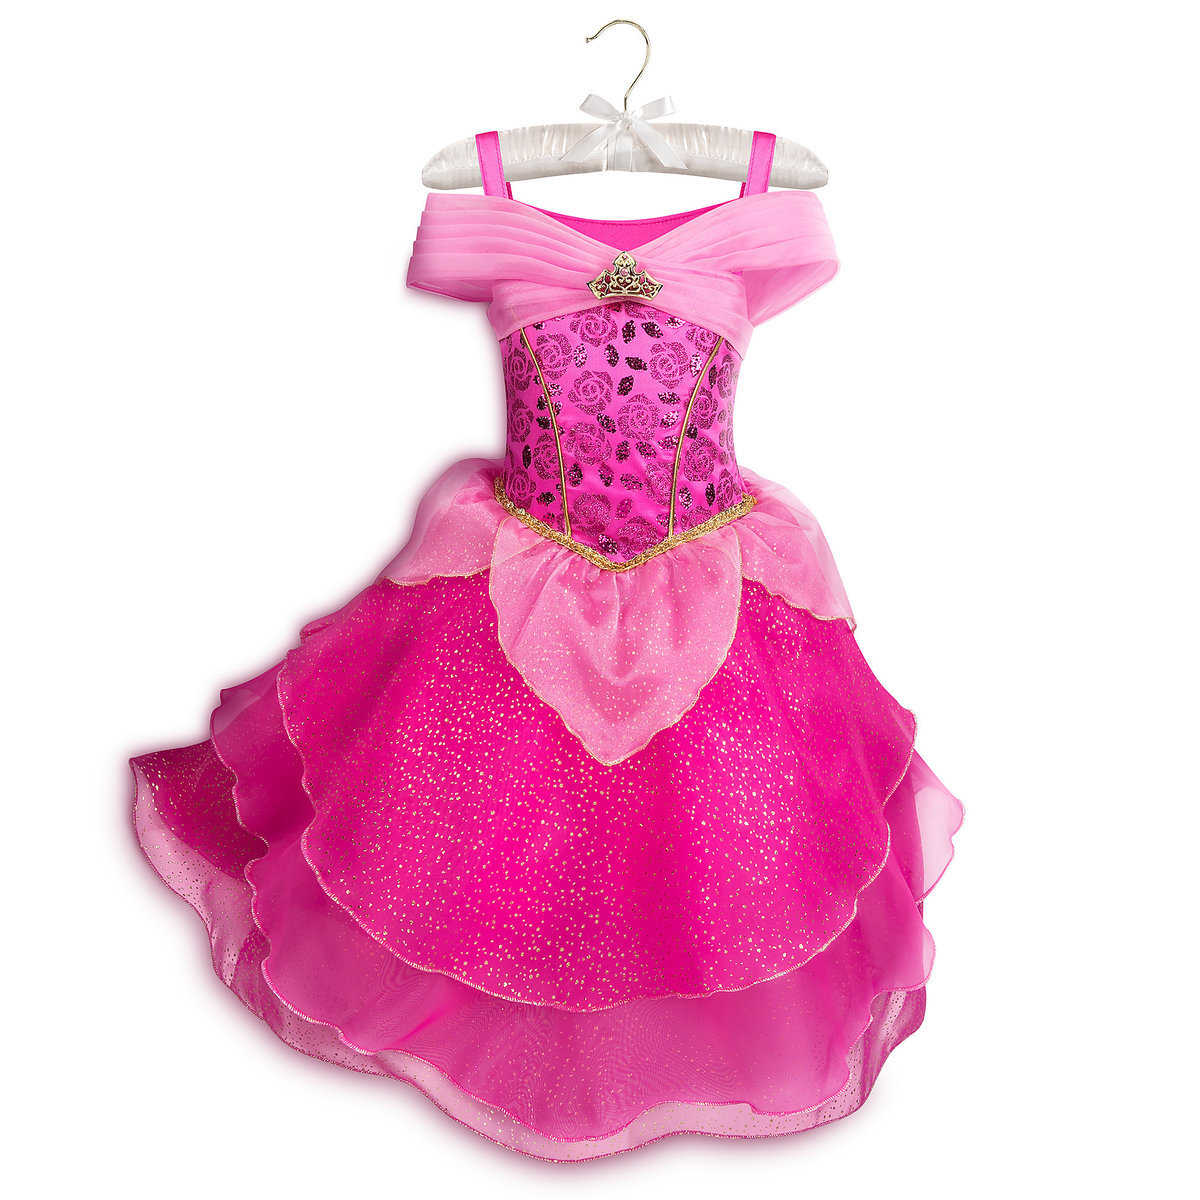 10a241ce695 Product Image of Aurora Costume for Kids - Sleeping Beauty   1